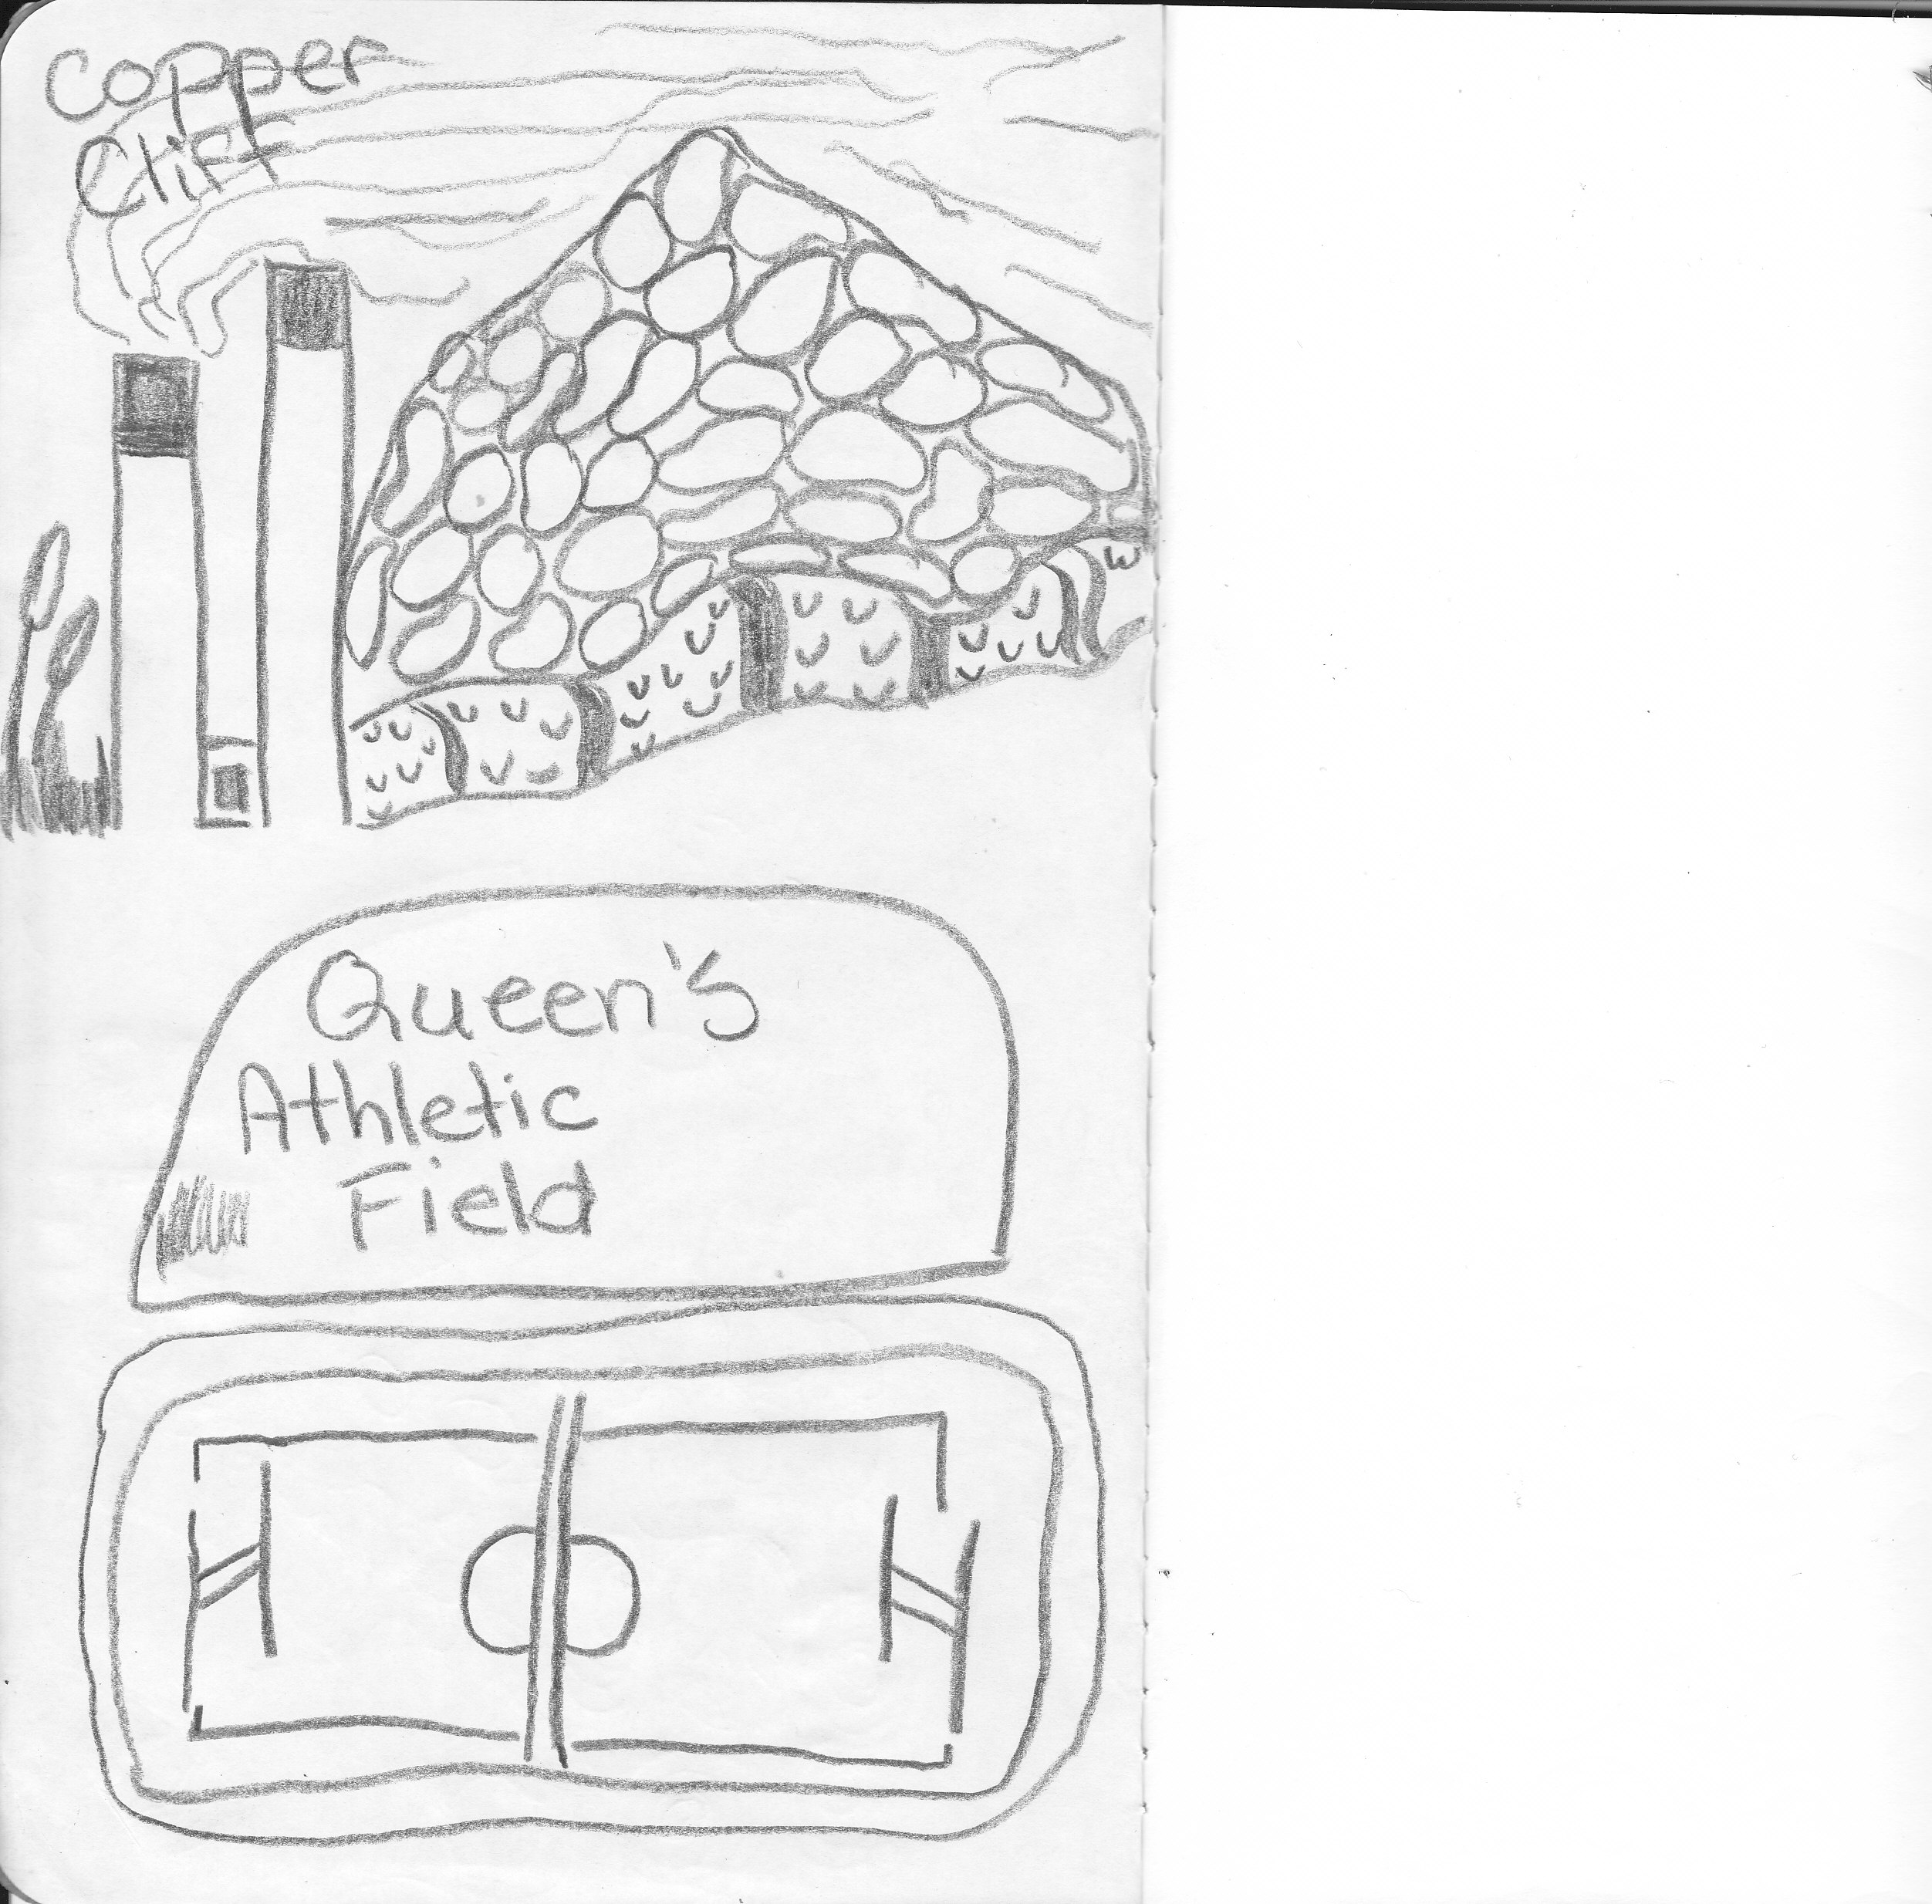 Queen's Alhletic Field and Copper Cliff chimneys